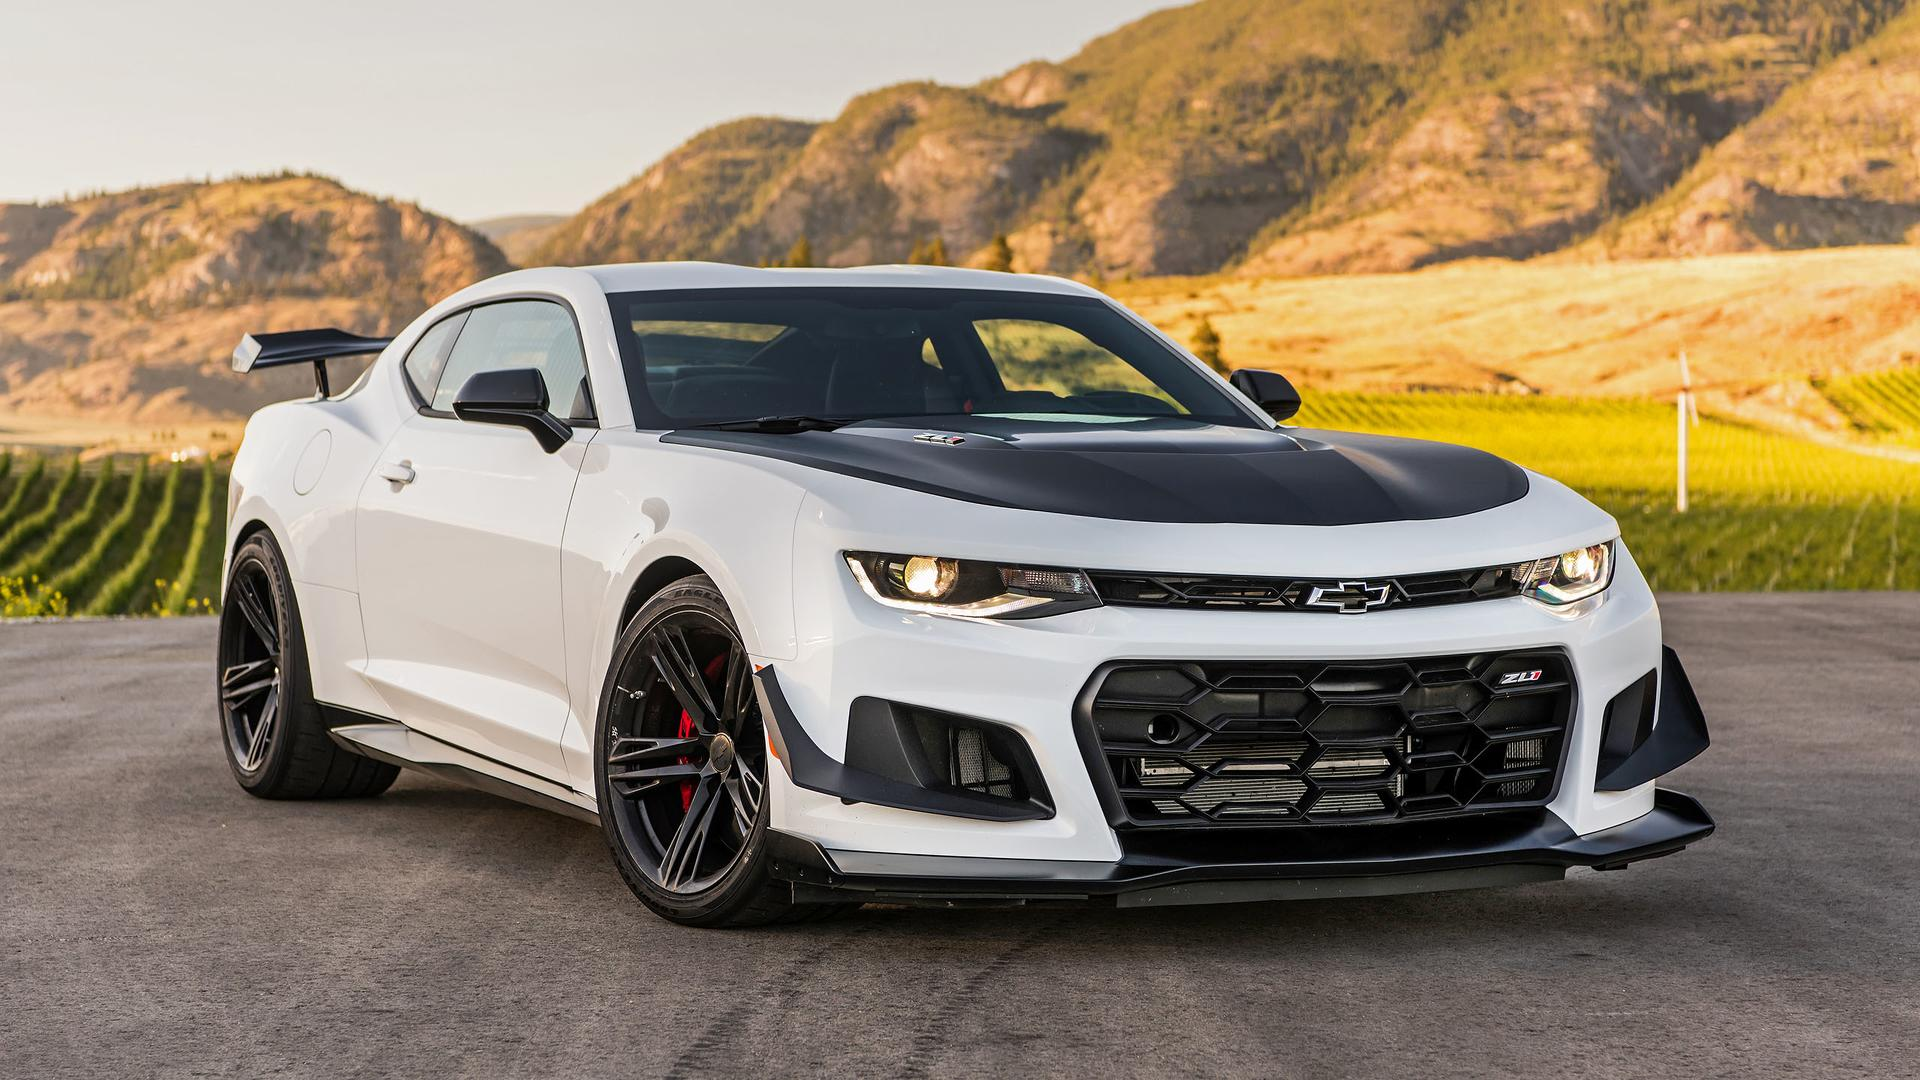 Kekurangan Camaro Zl1 2018 Review